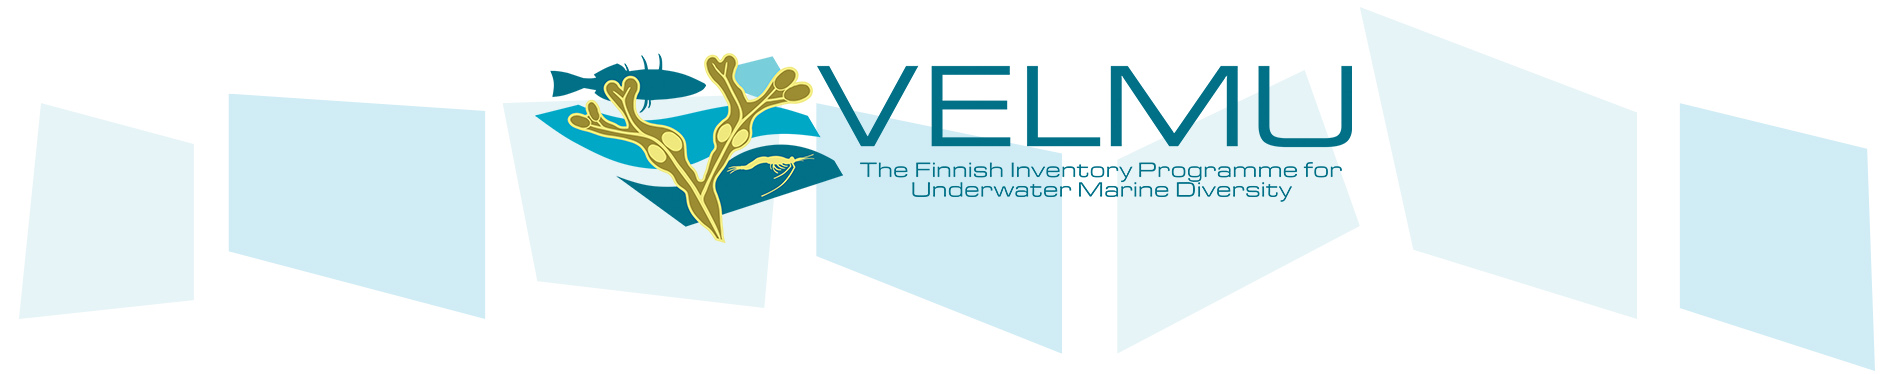 The Finnish inventory programme for the underwater marine environment